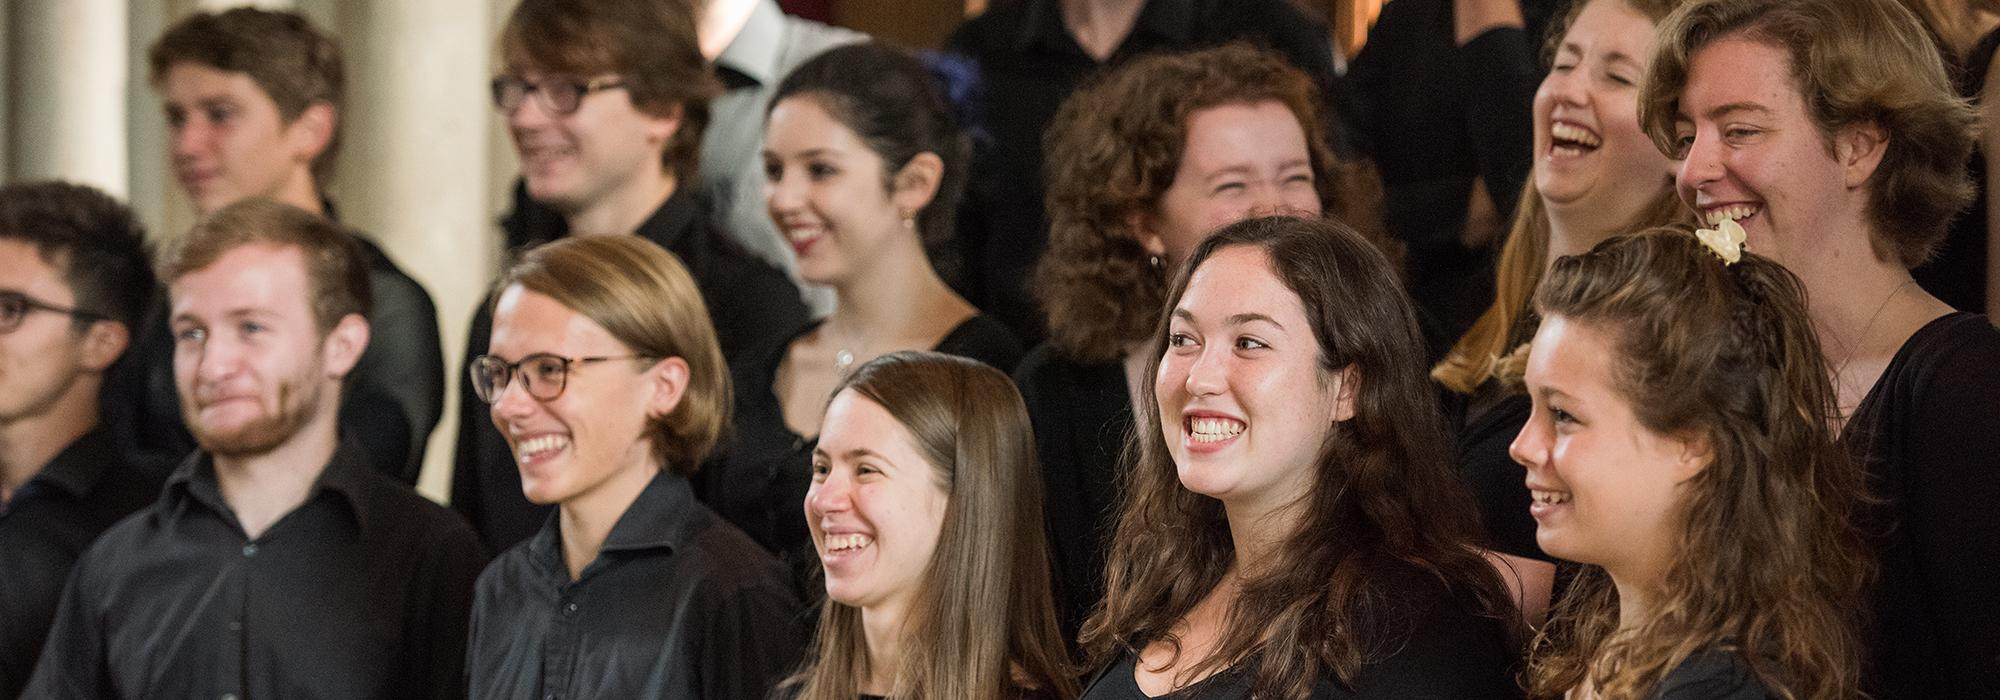 Members of the Choir of Merton College, September 2016 - Photo: © John Cairns - www.johncairns.co.uk